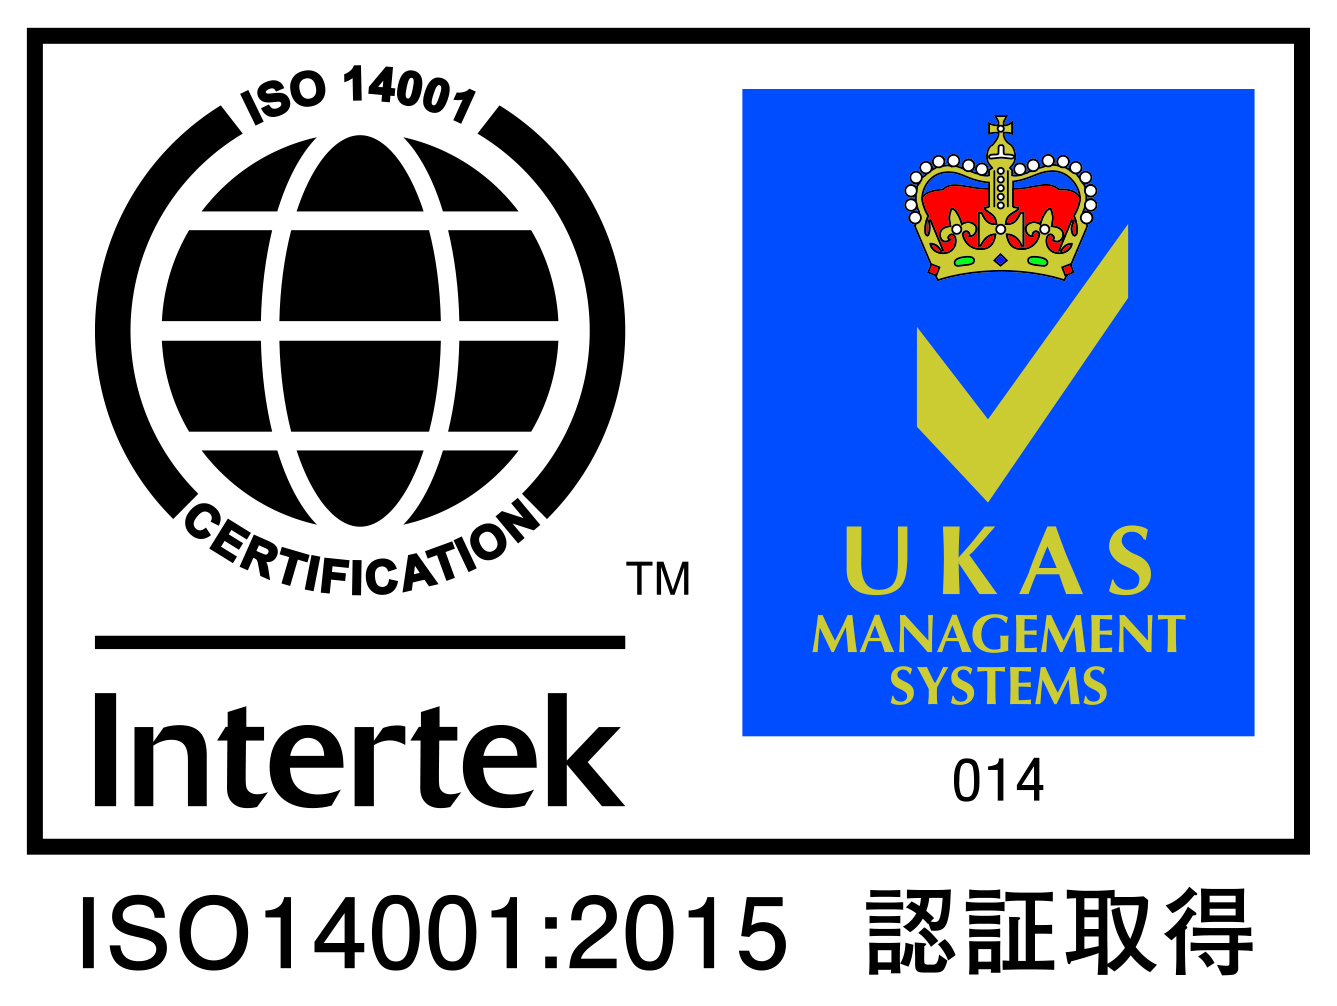 「ISO14001:2015」認証登録証明書